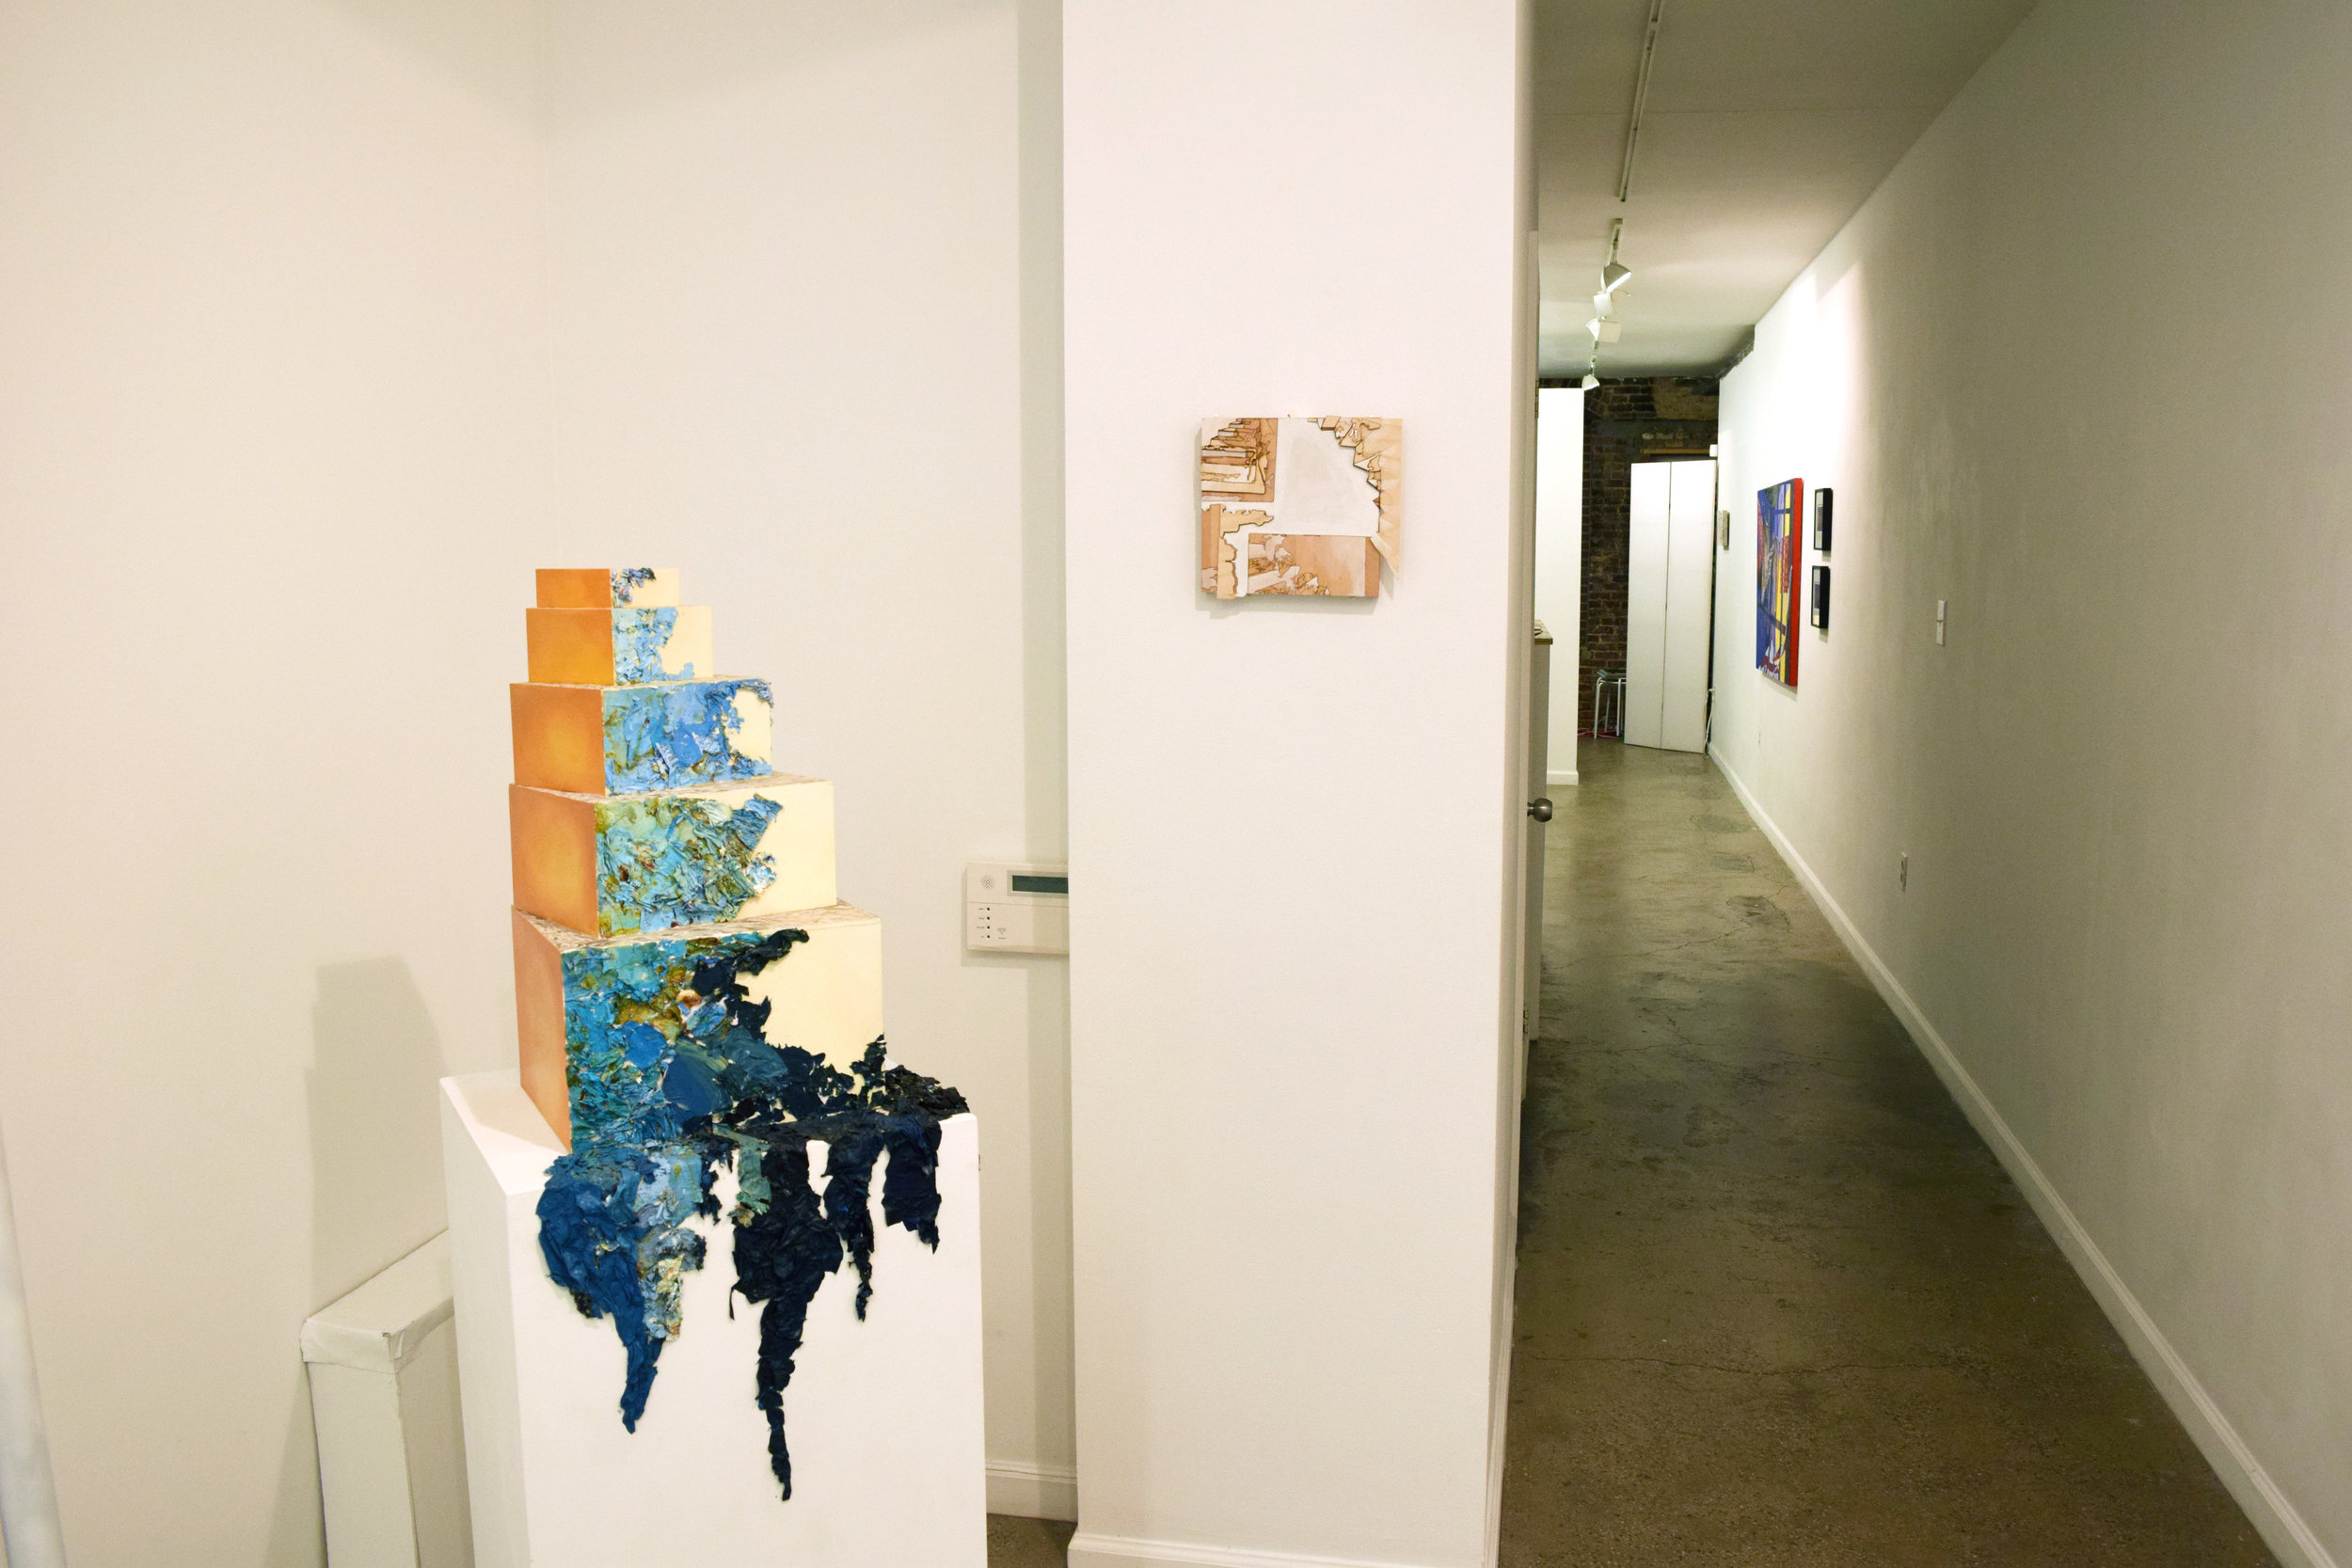 Installation View of Kelly Olshan's Staircase in Blue (2015) and No Summit, Laser Cut Edition (2017)